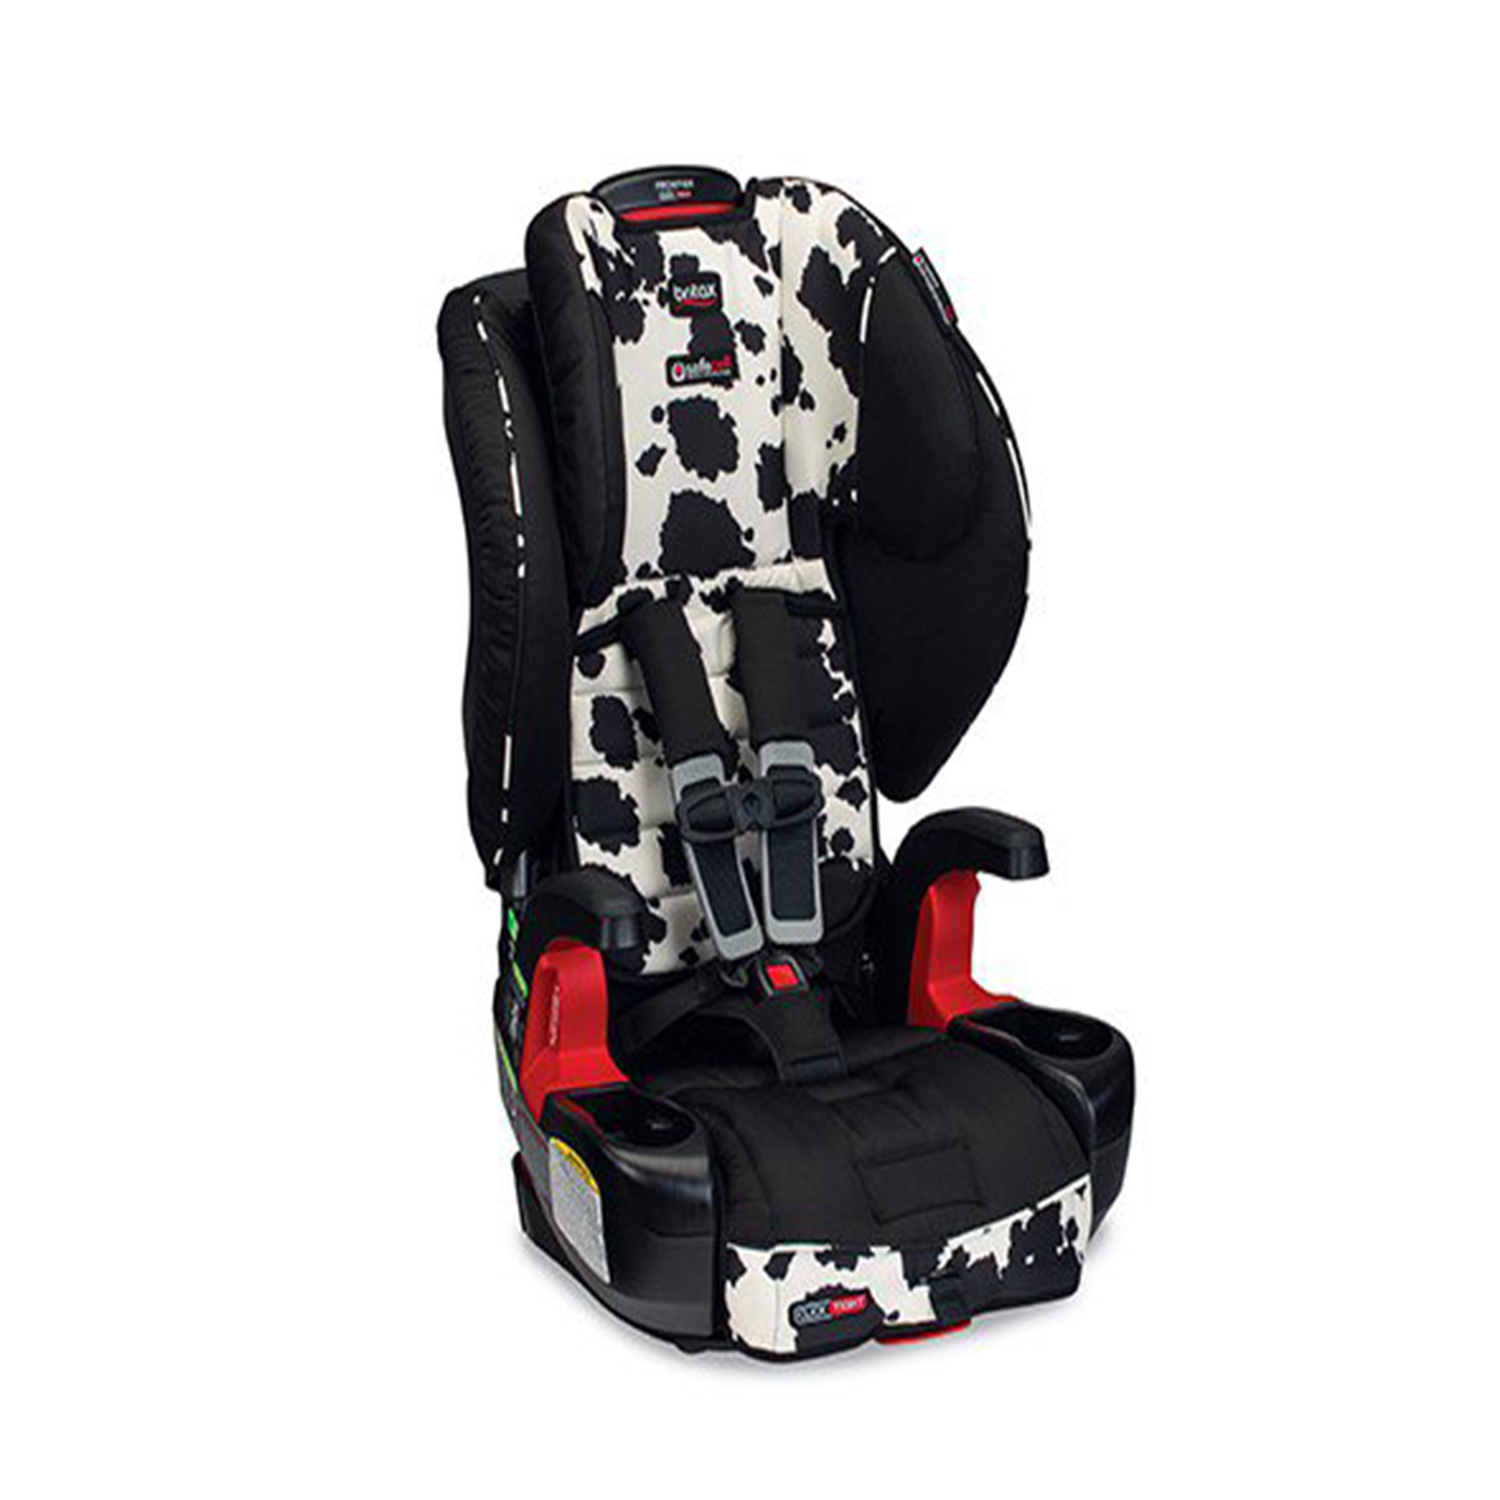 Britax Frontier G1.1 ClickTight Harness-2-Booster Car Seat by Britax